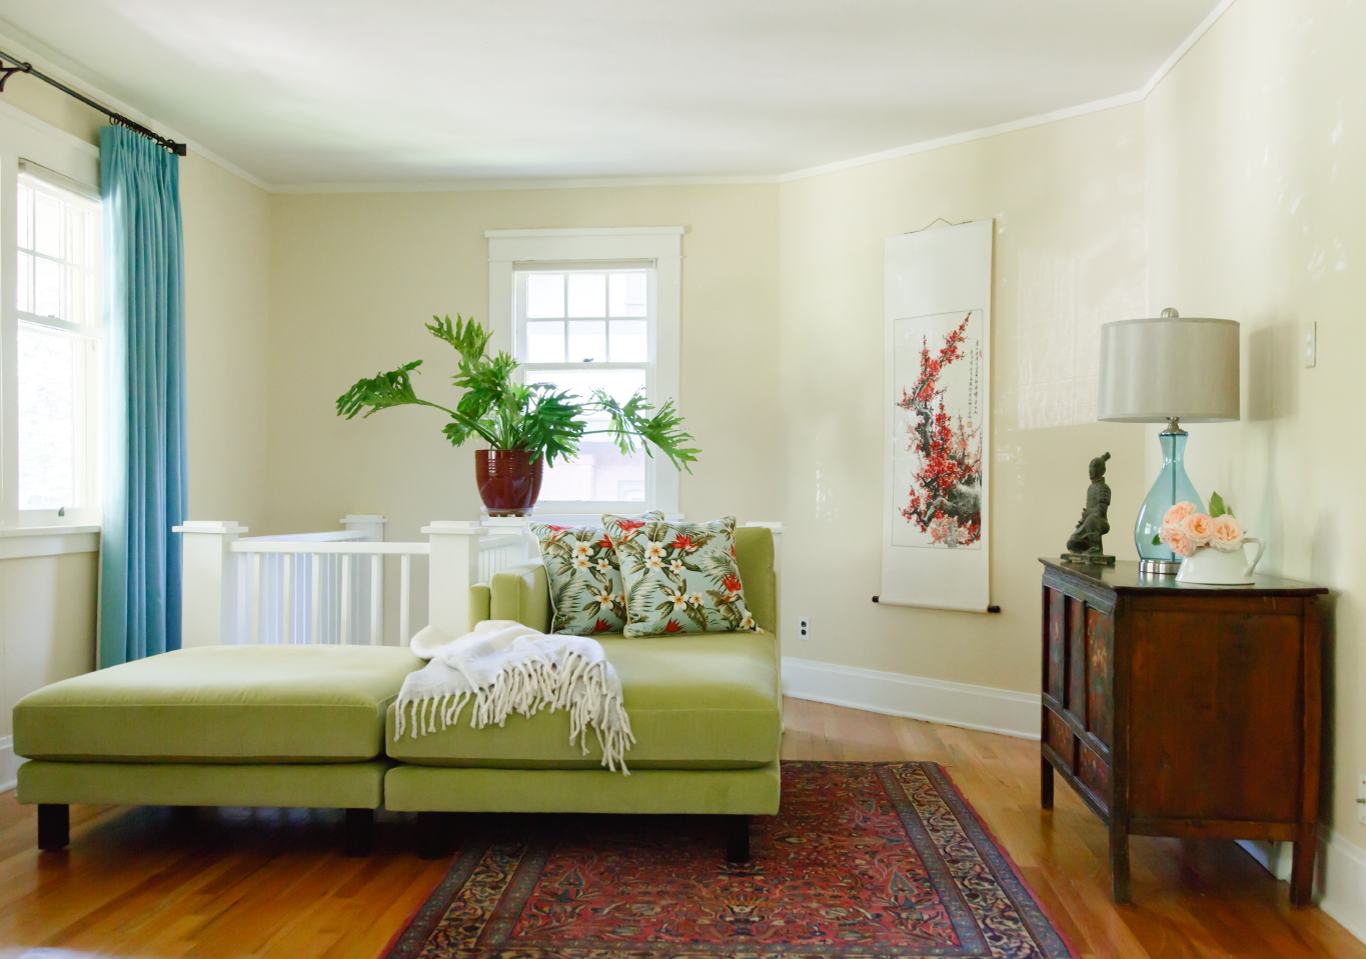 Upstairs nook with green chaise and ottoman